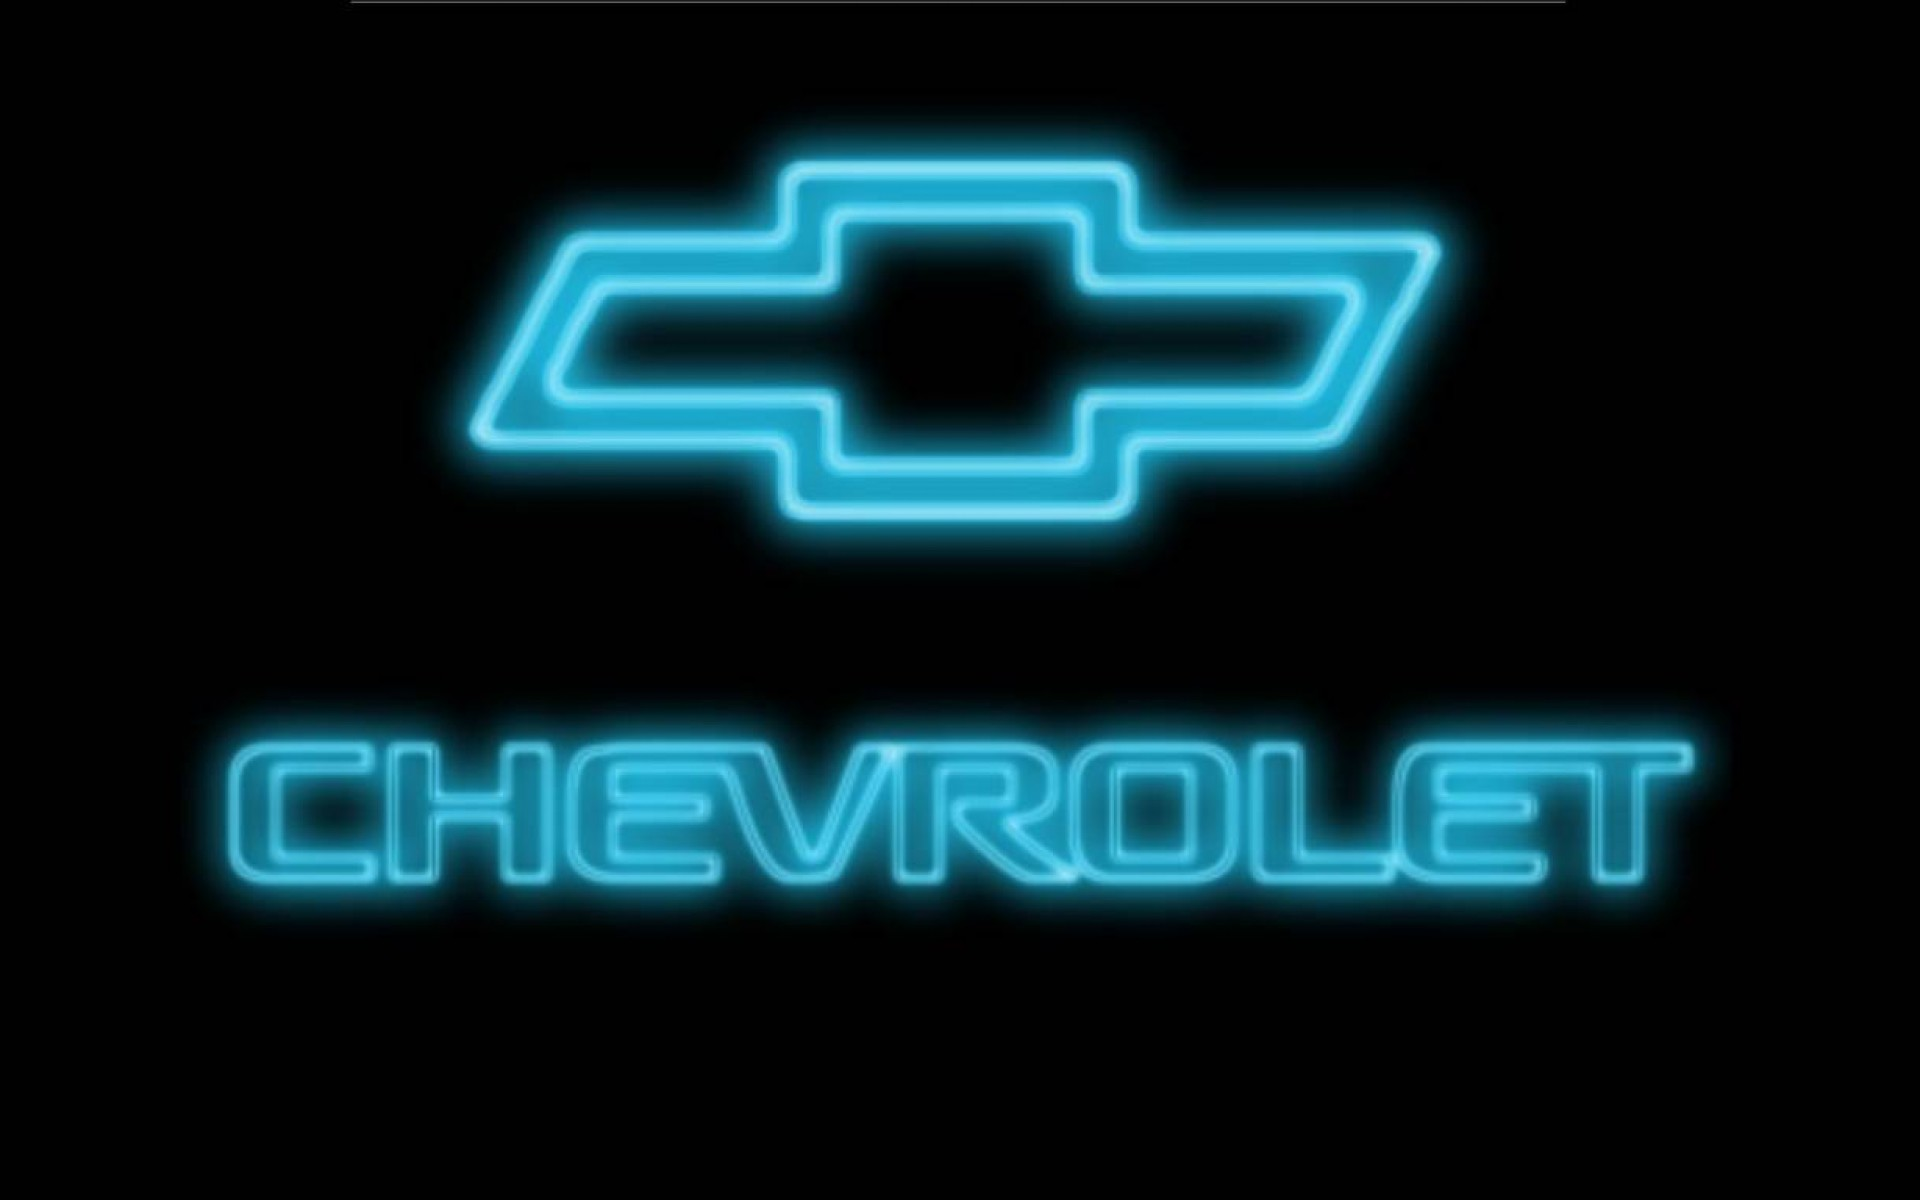 Chevy logo wallpaper chevrolet biocorpaavc Images